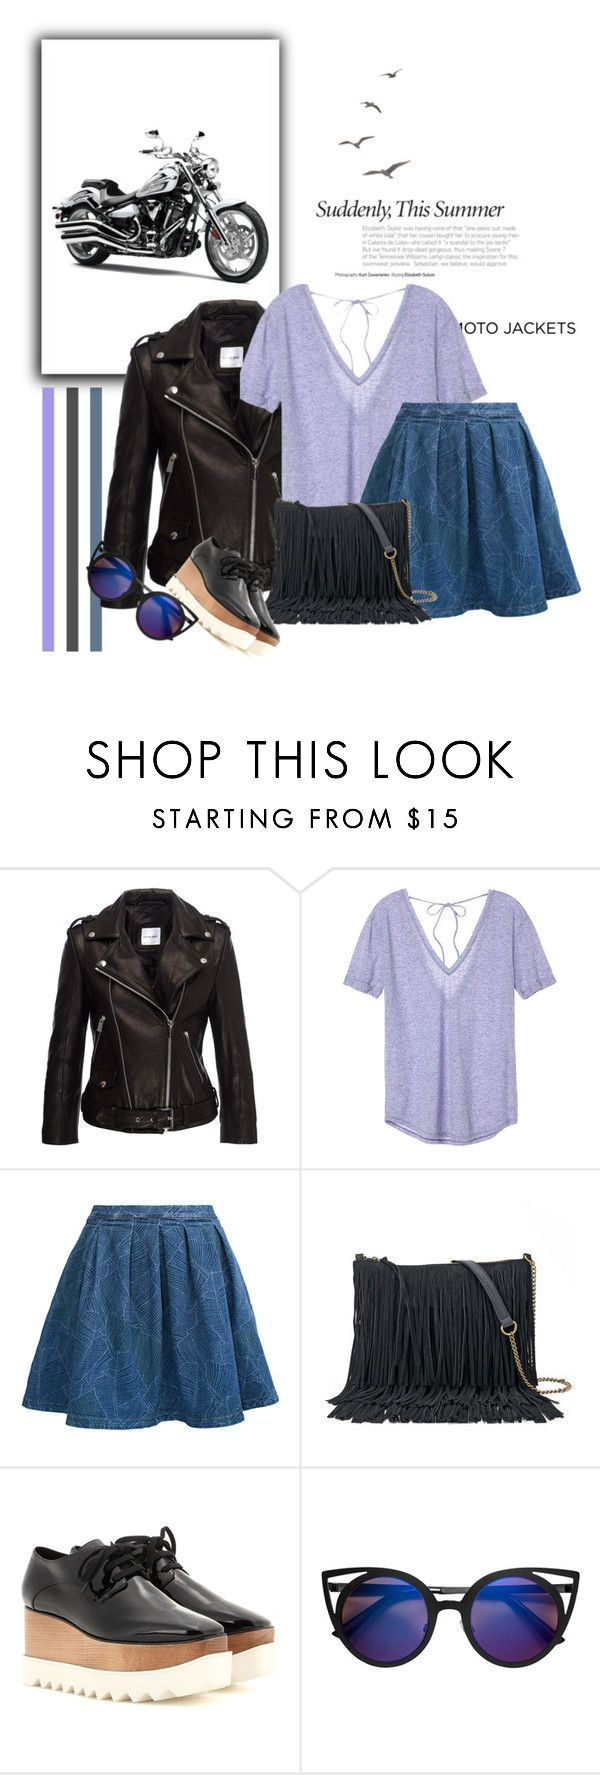 """""""MOTOR"""" by larisa-ivanov ❤ liked on Polyvore featuring Anine Bing, Victoria's Secret, MPJ, SONOMA Goods for Life and STELLA McCARTNEY"""